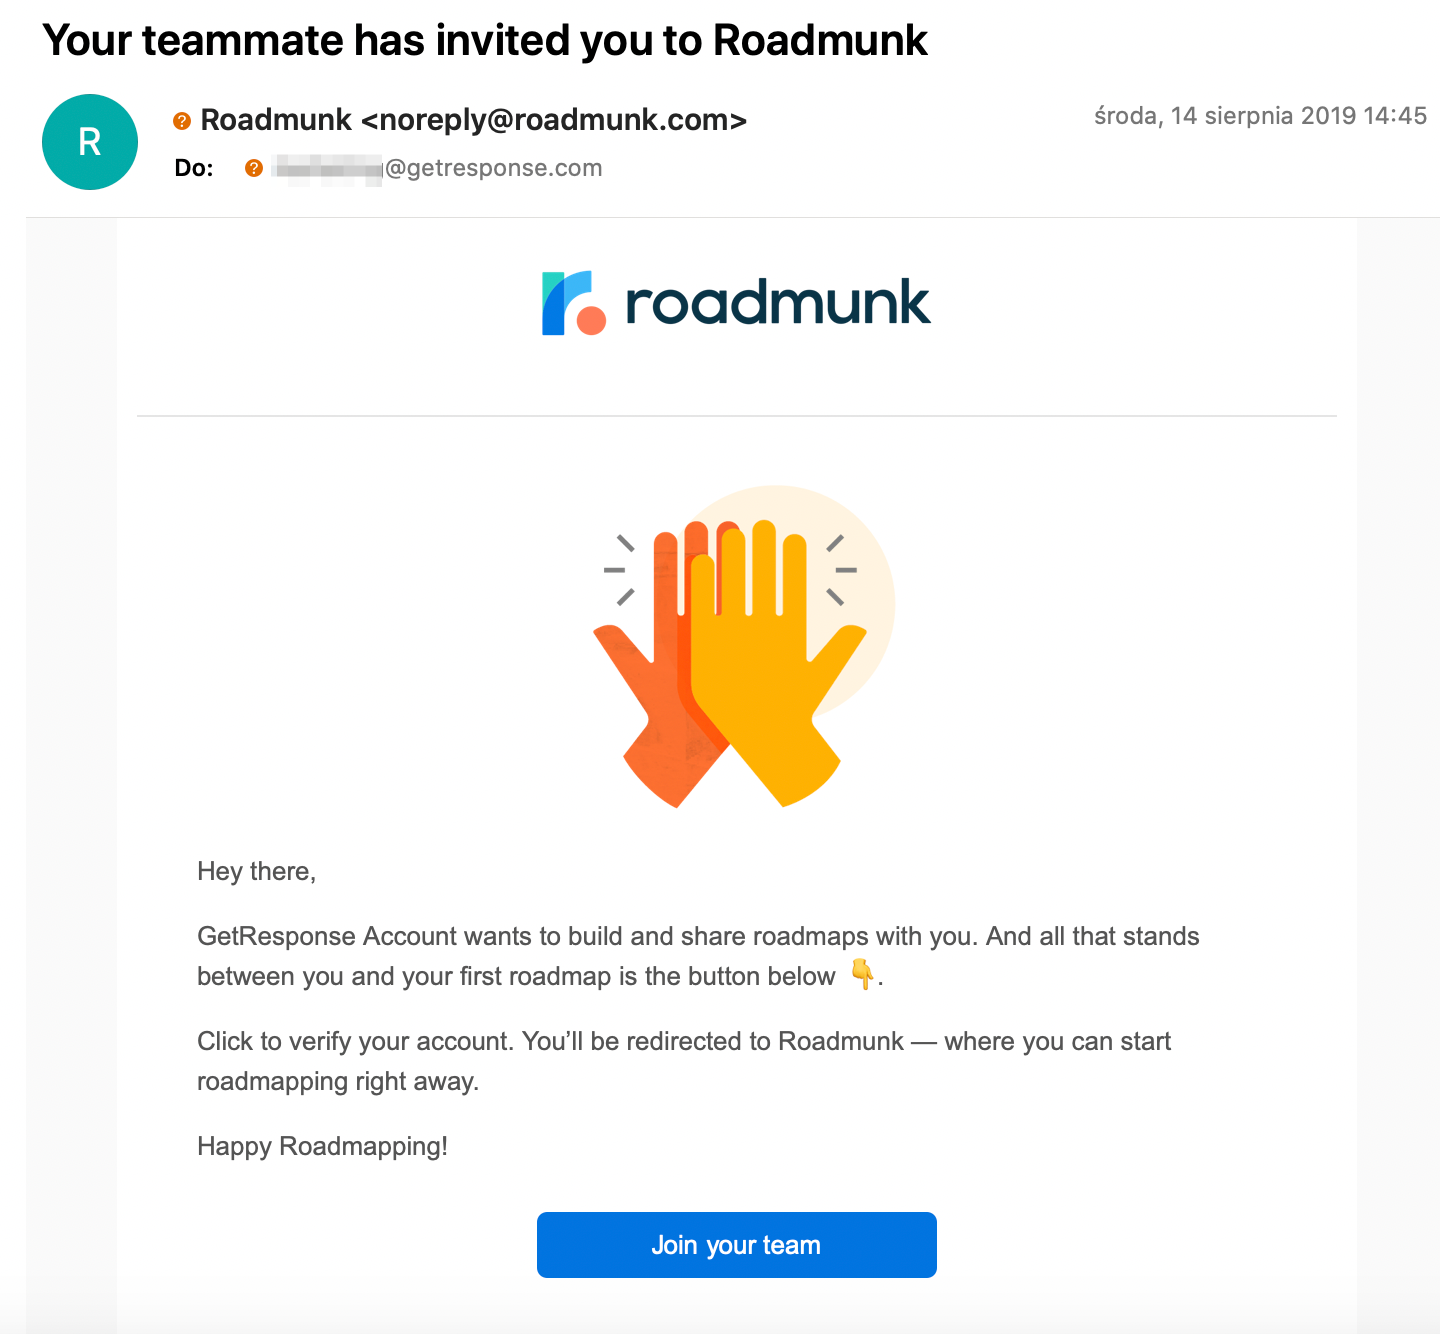 An email inviting the recipient to join their team in Roadmunk.